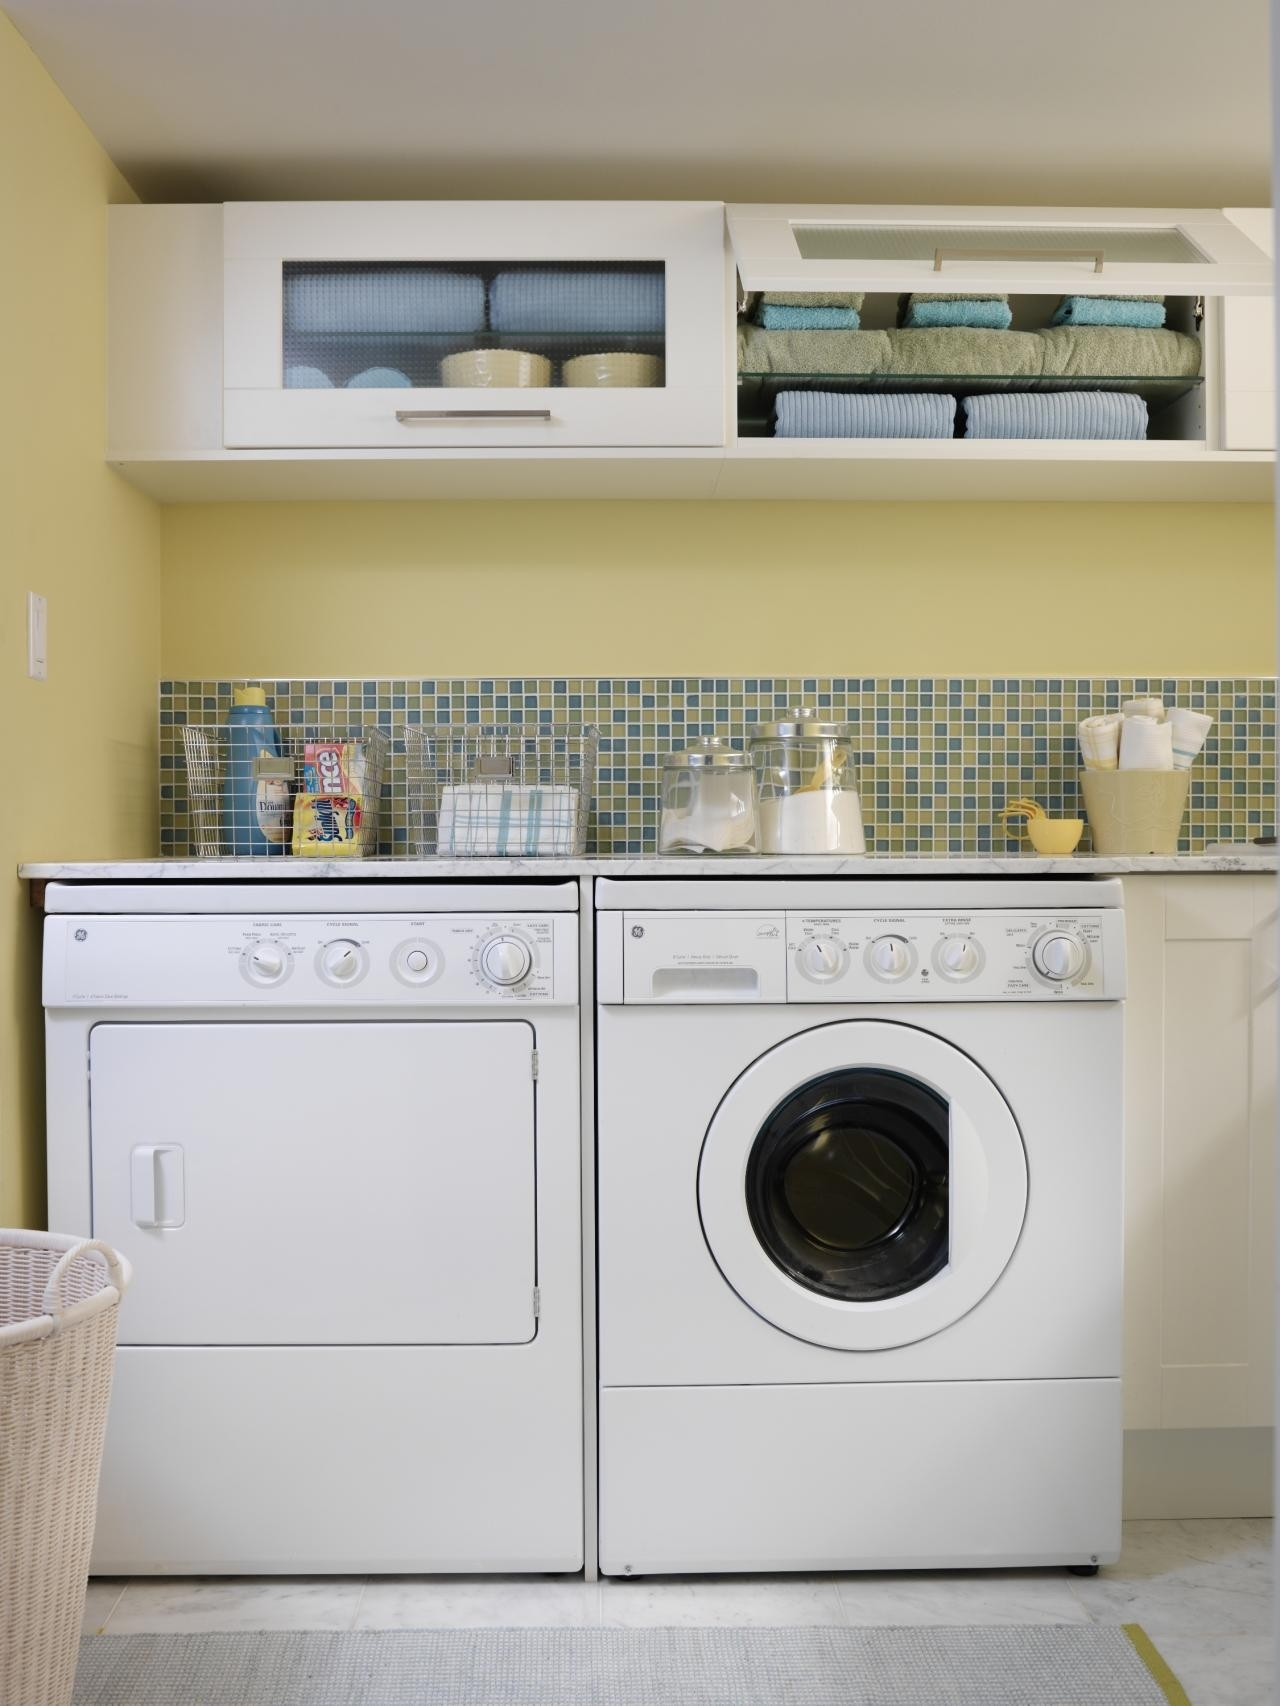 10 clever storage ideas for your tiny laundry room | hgtv's